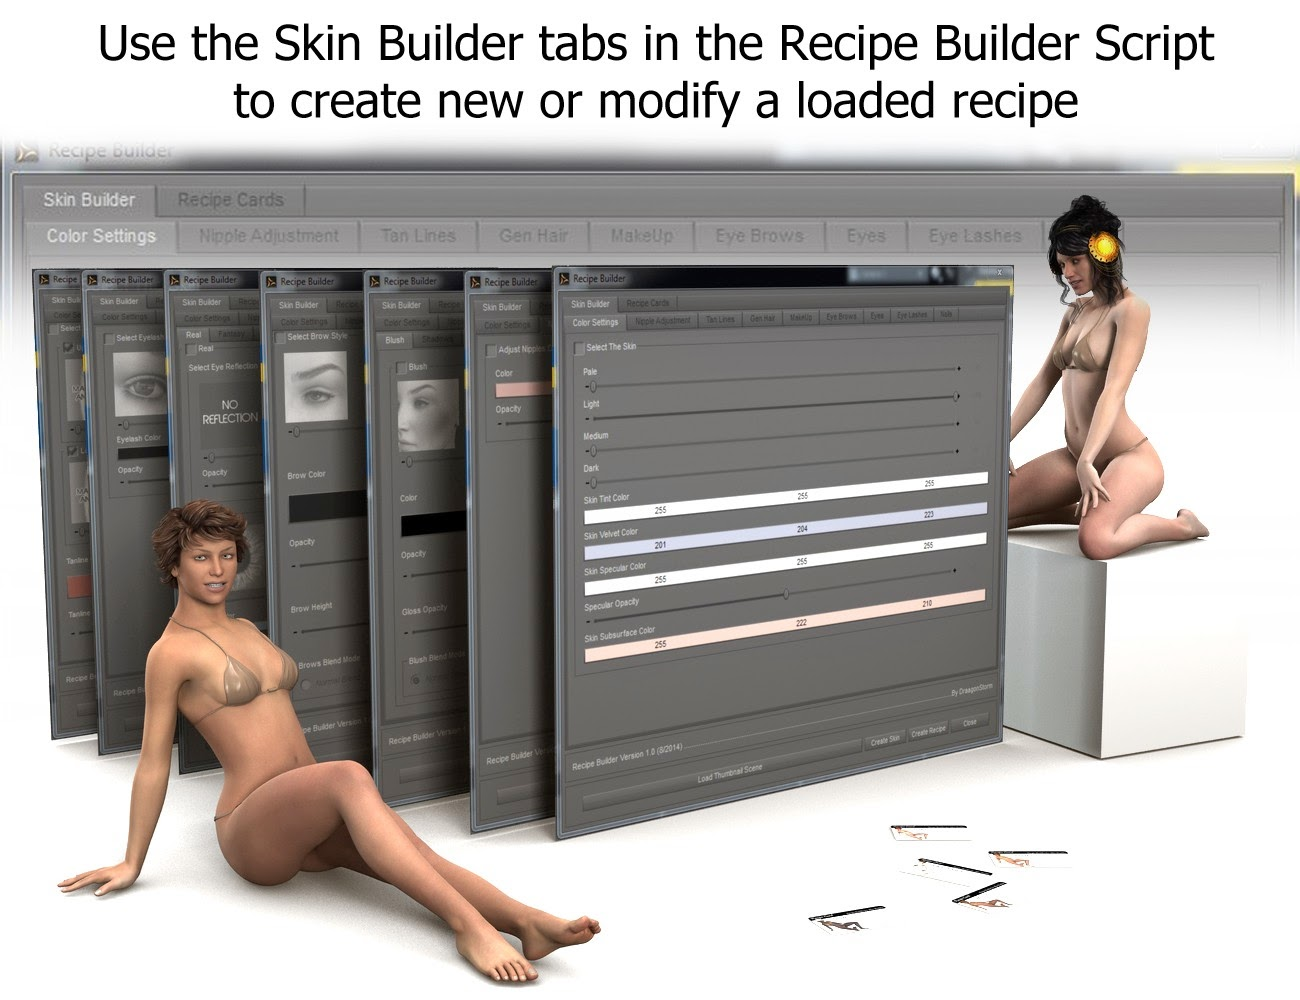 3d Models - Save and Share for Skin Builder